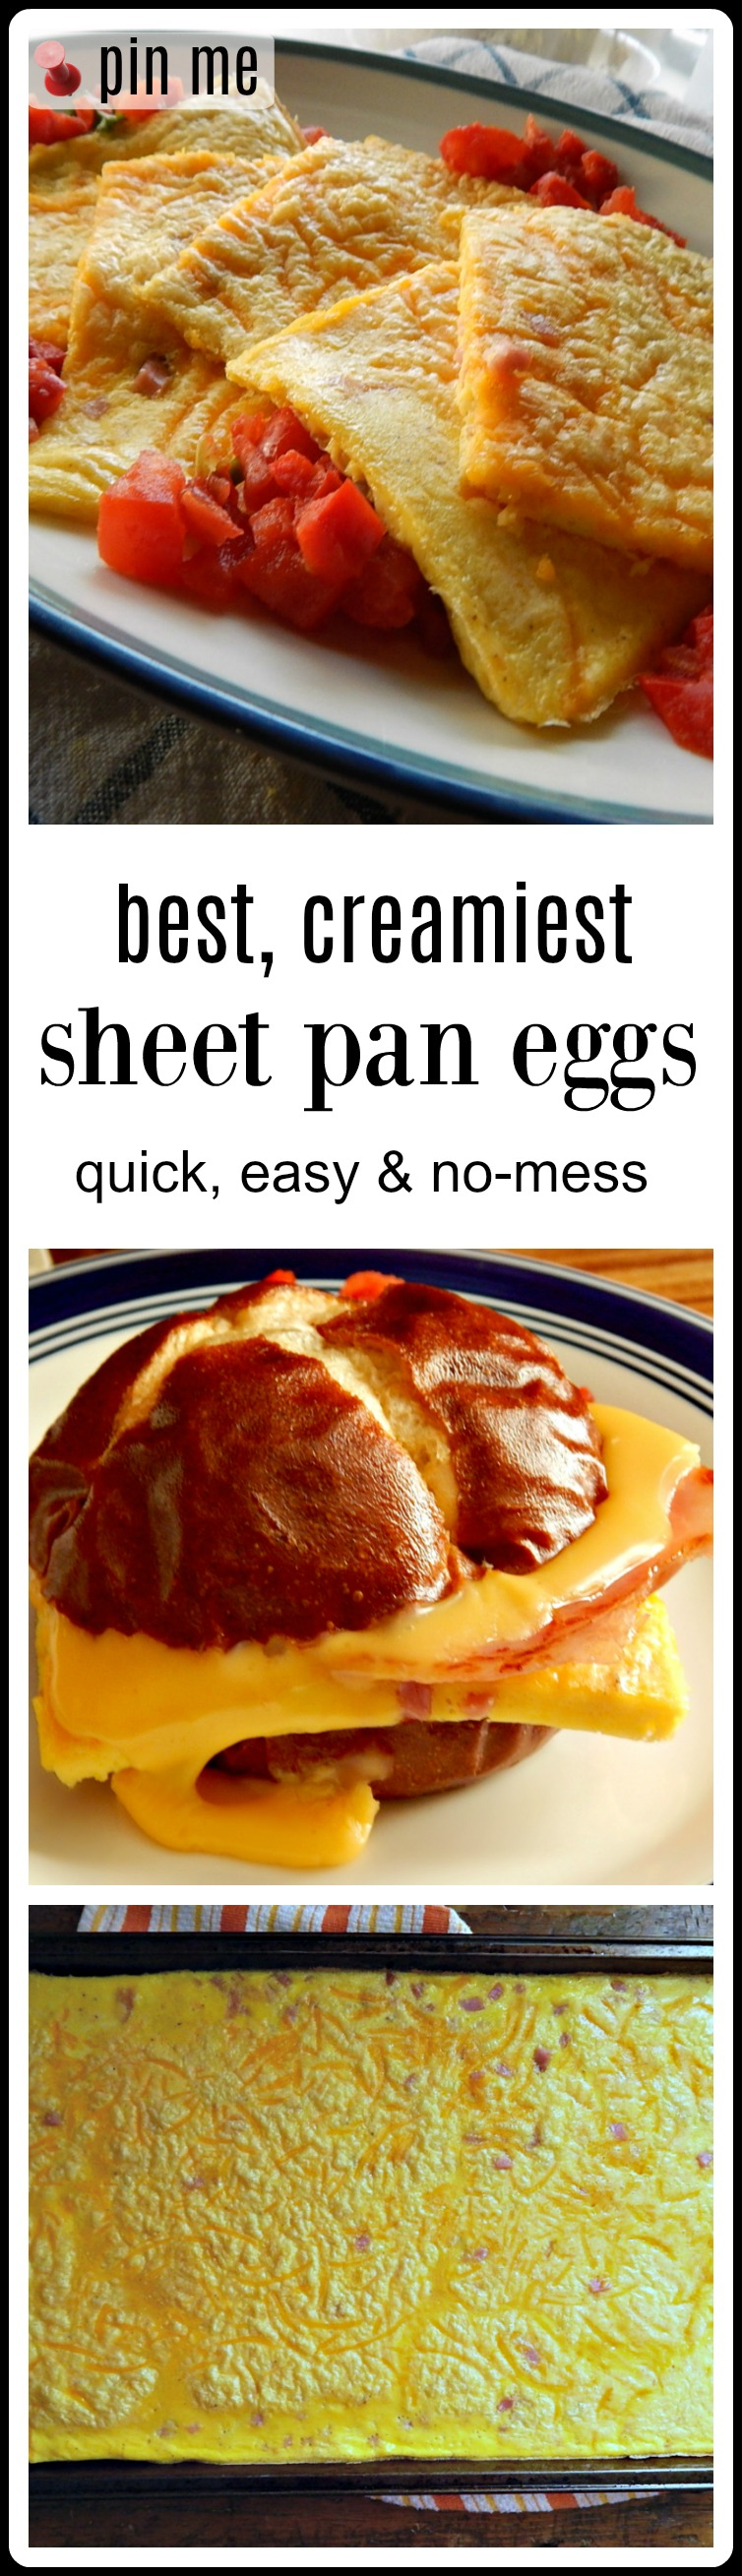 The Best Creamiest Sheet Pan Eggs - fast, easy & quick, these turn out creamy & delish. Perfect for Breakfast or make ahead food prep. #SheetPanEggs #BestSheetPanEggs #BestCreamySheetPanEggs